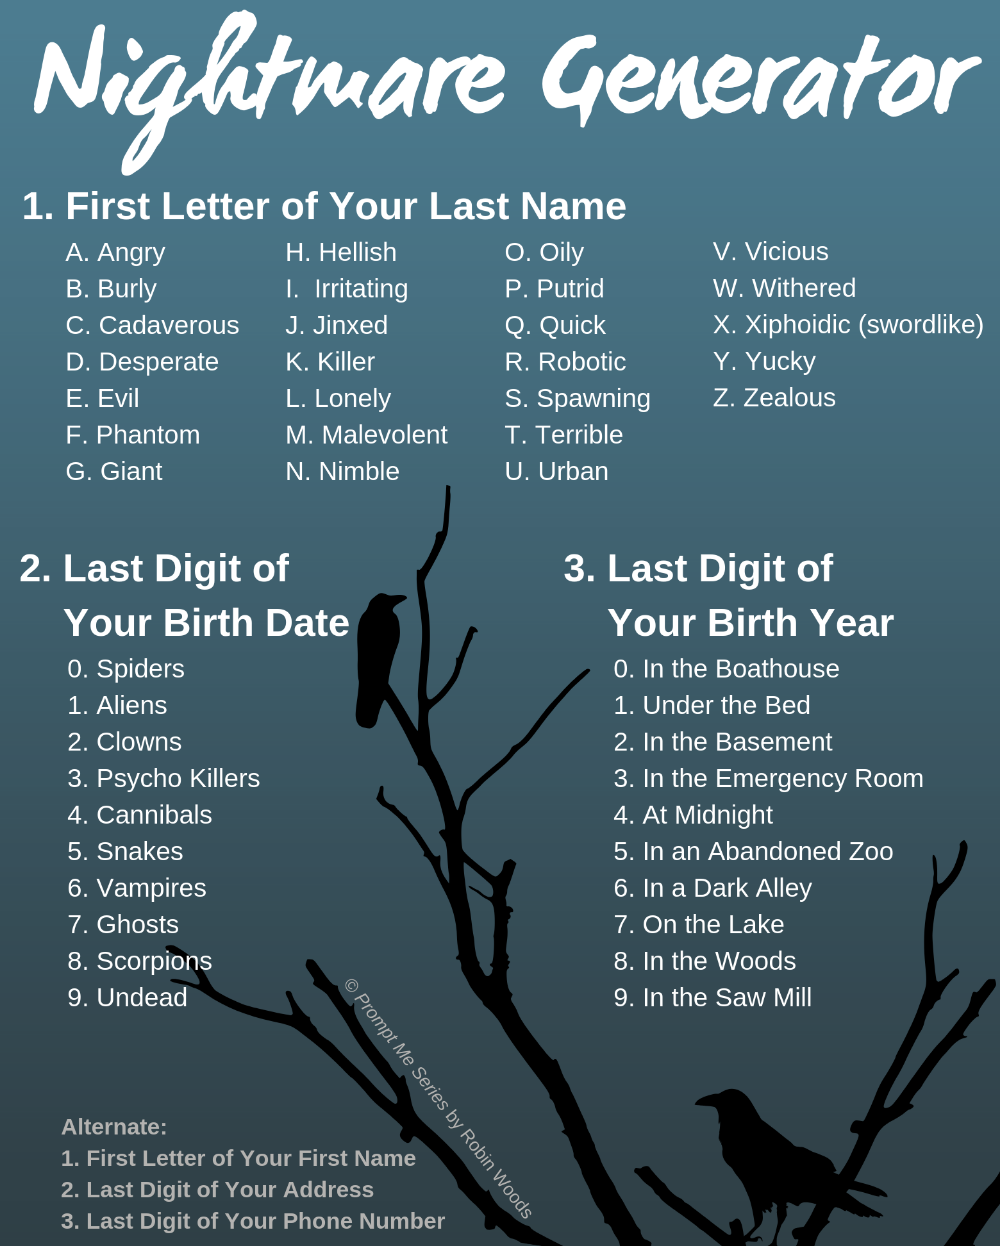 Nightmare Generator From Prompt Me Horror Thriller Thriller Daily Writing Prompts Cool Writing